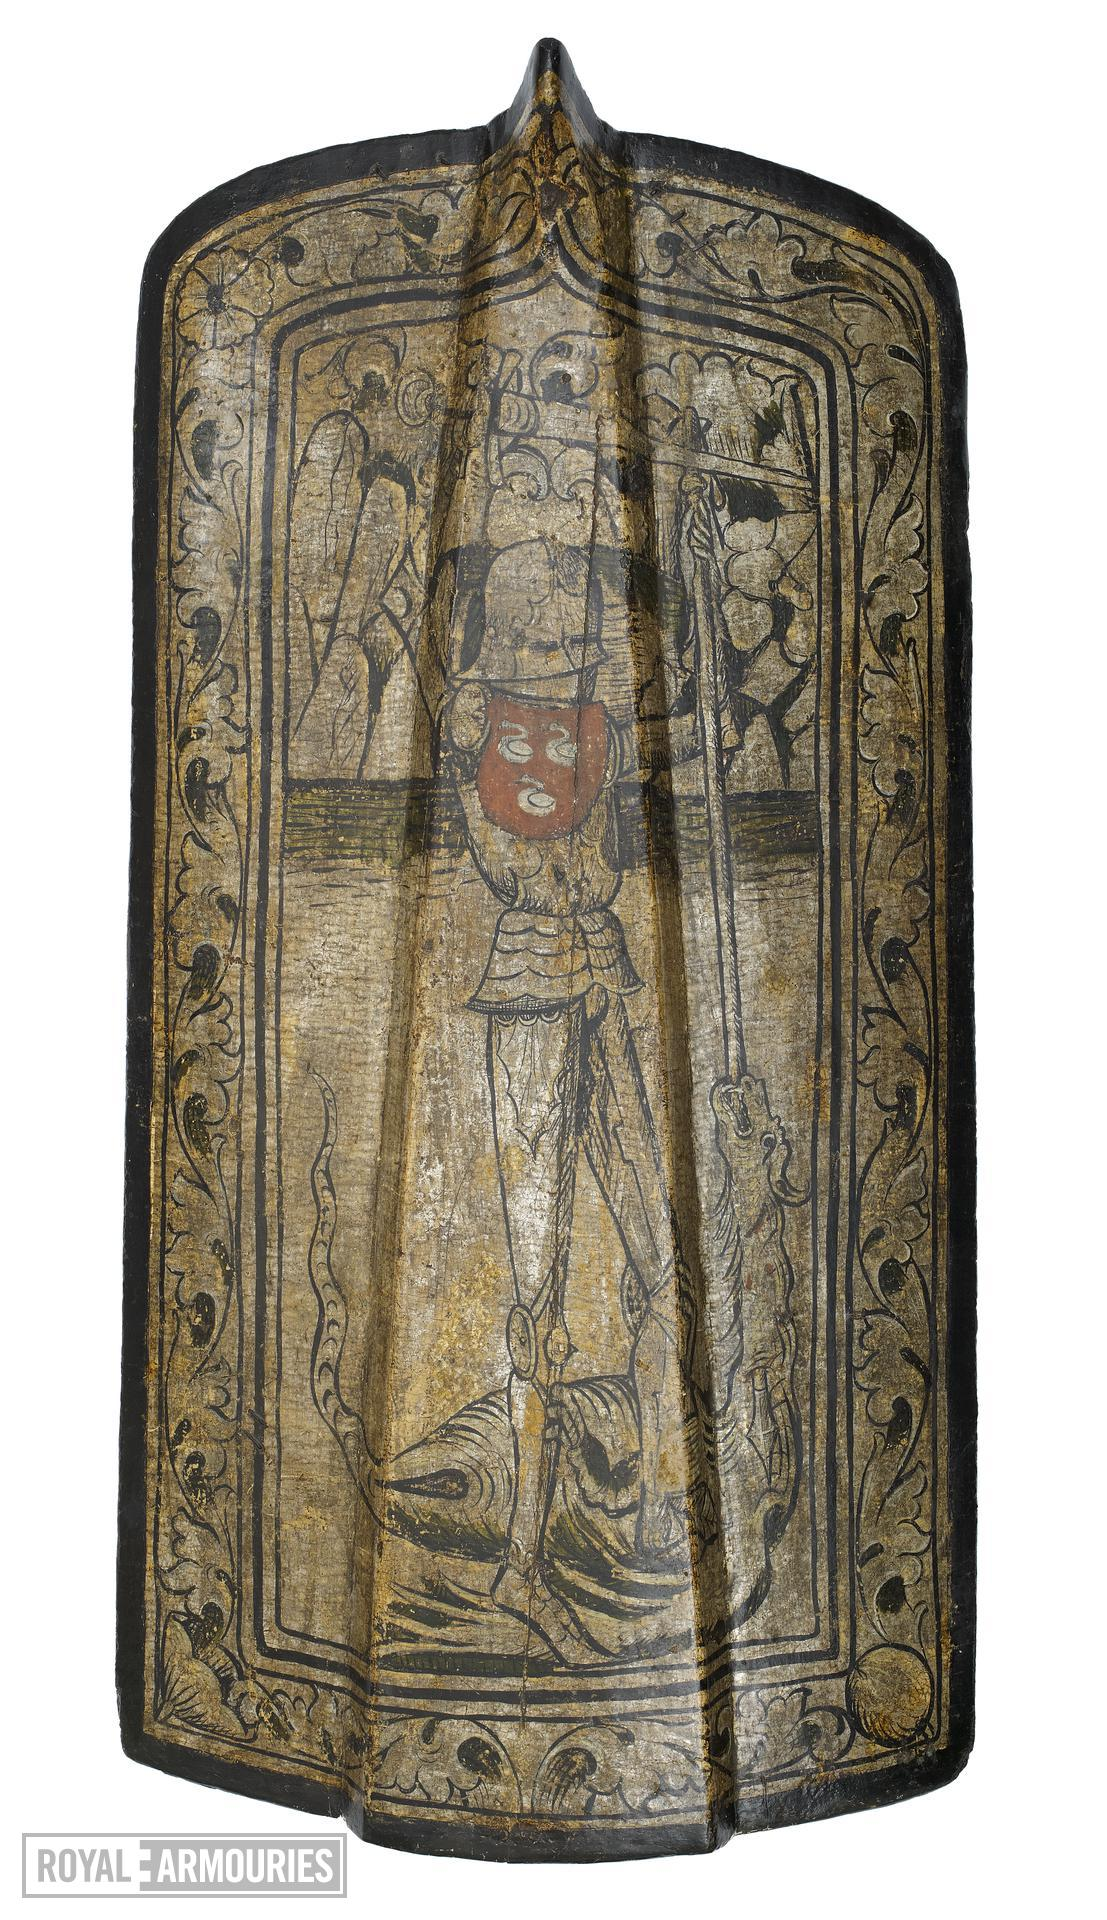 Rectangular shield decorated with image of St George and the Dragon